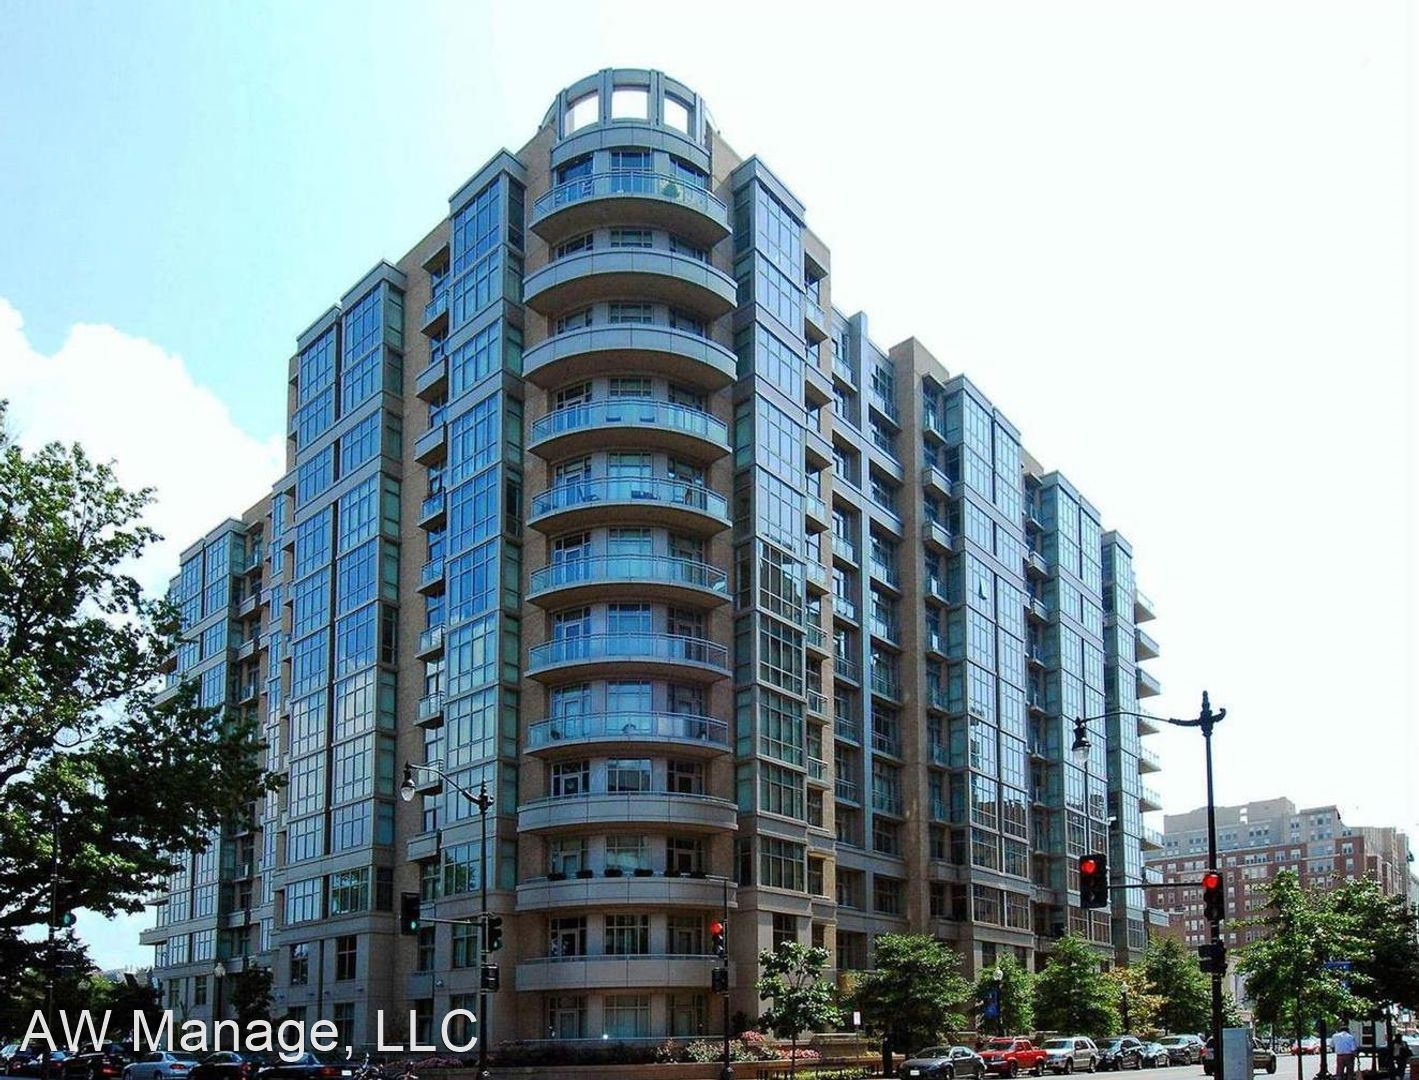 811 4th St NW Apt #403, Washington, DC - $2,850